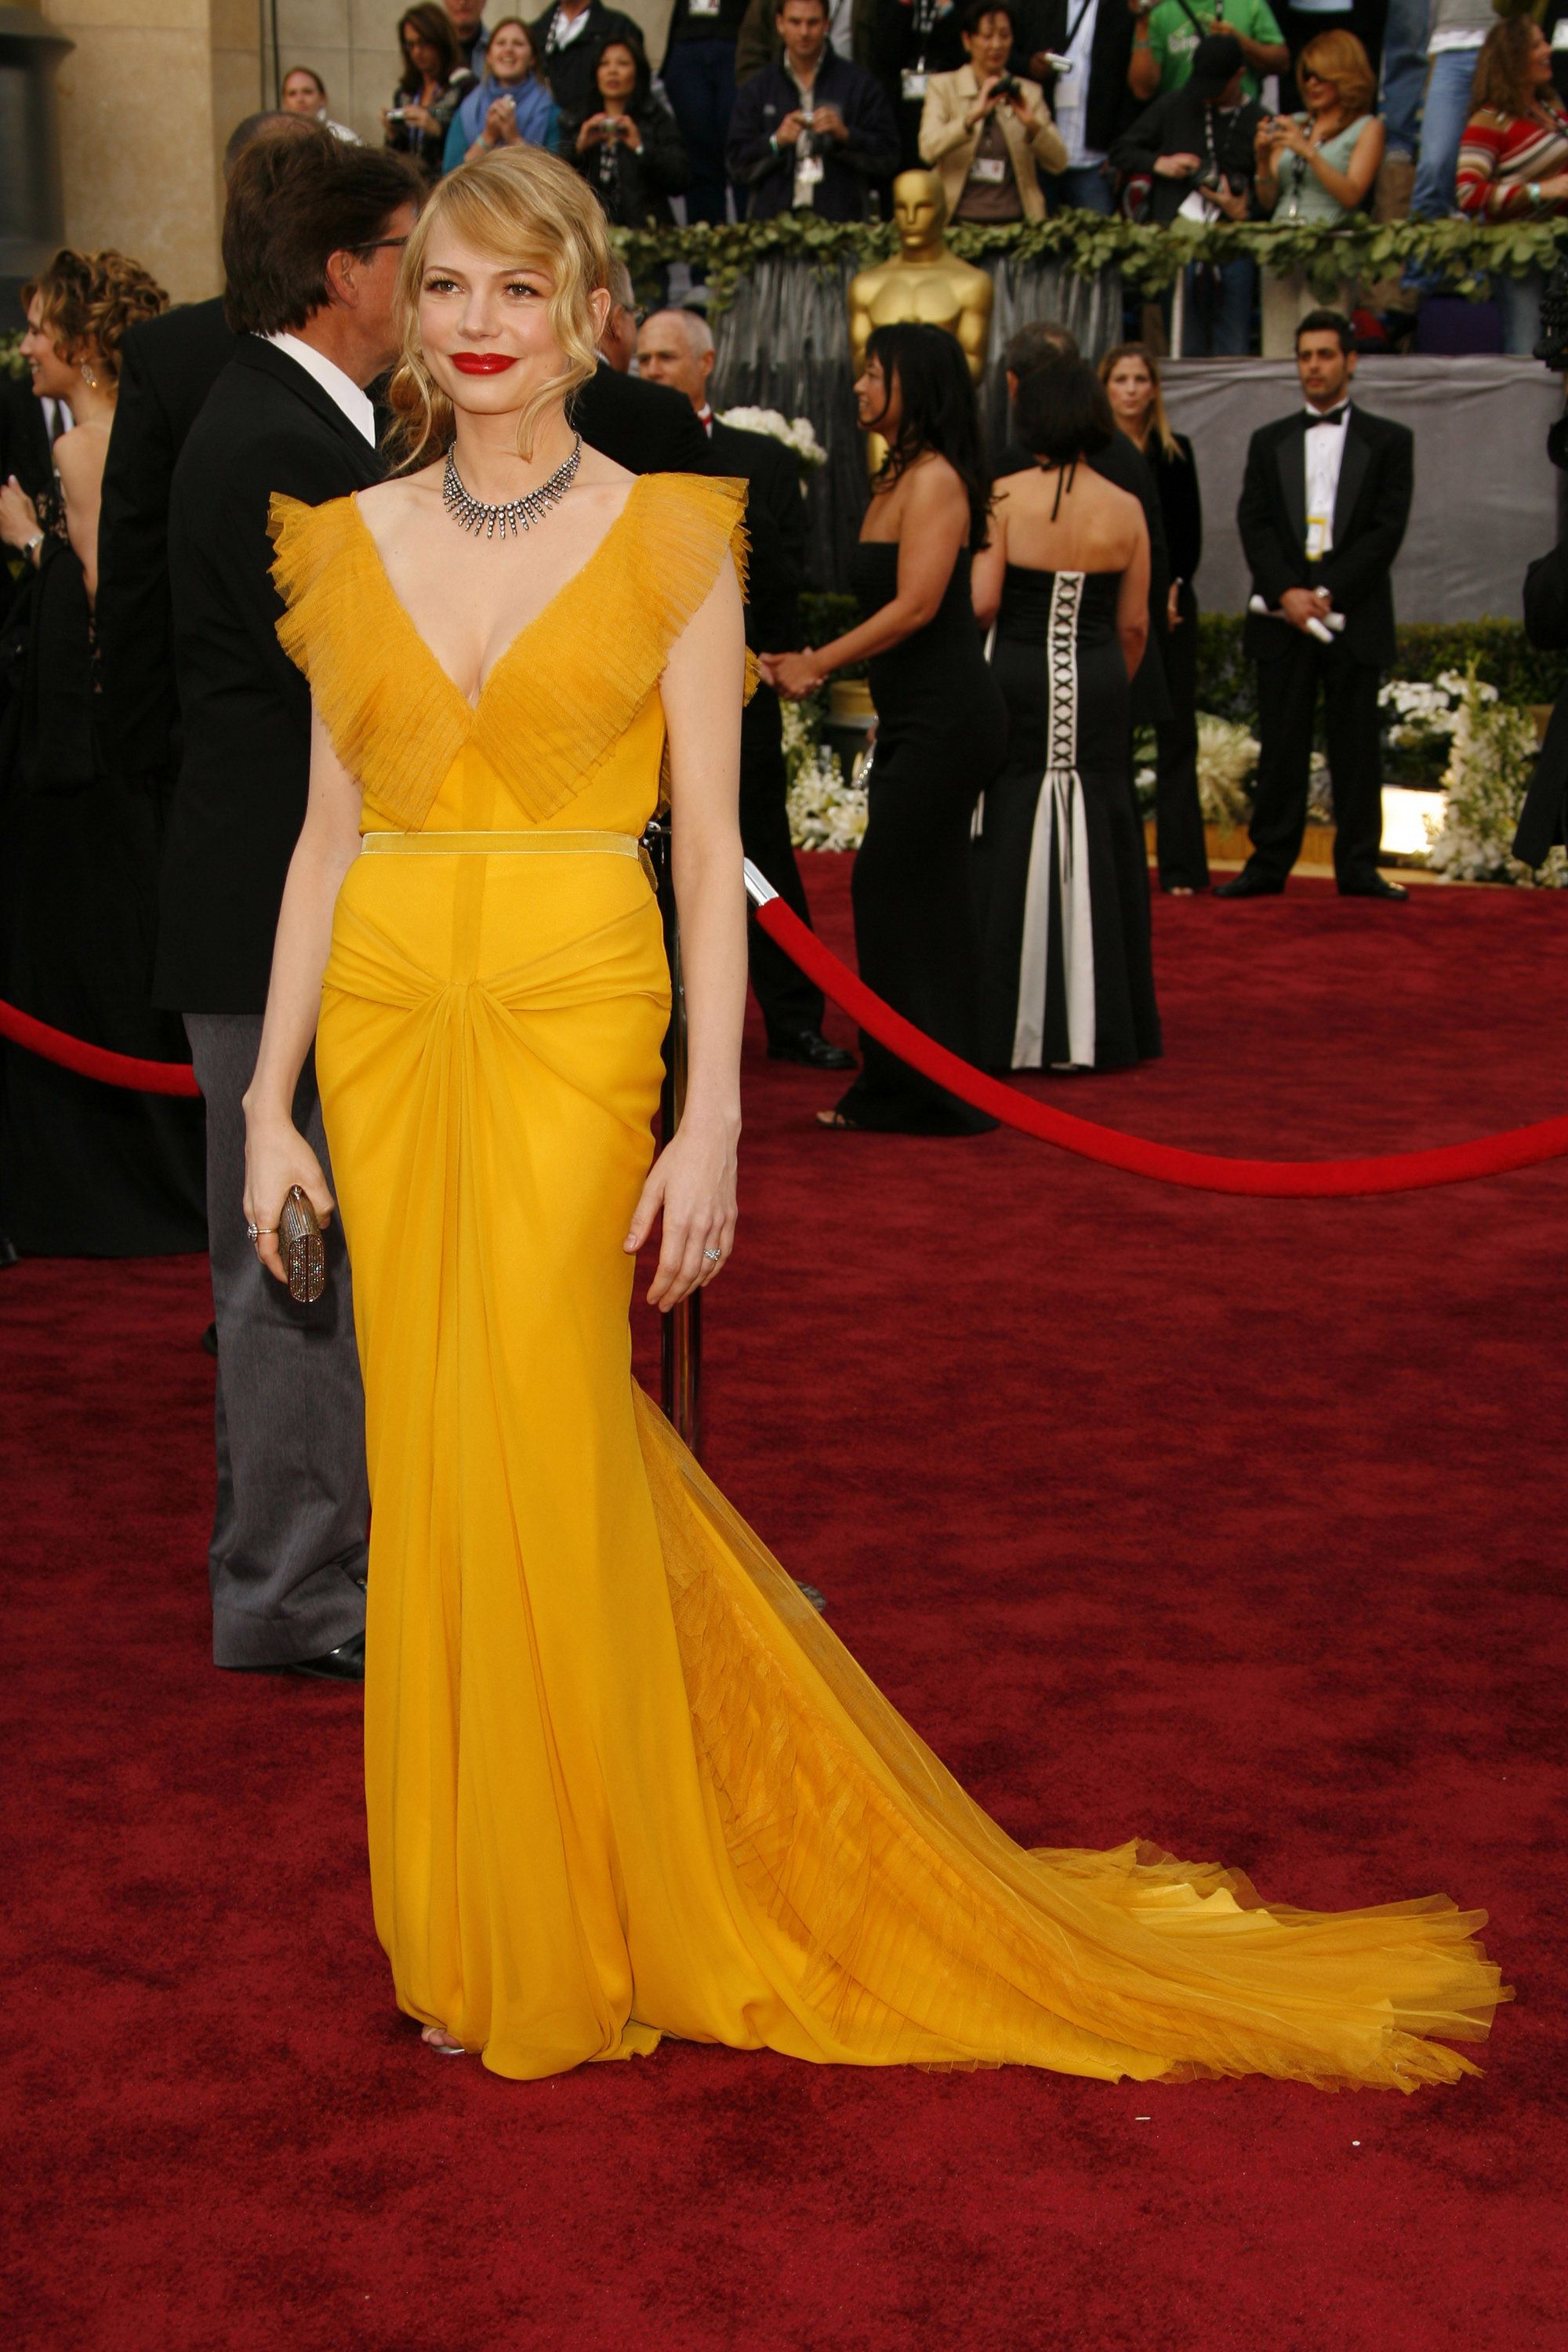 25 Oscars Dresses That Will Go Down In Red Carpet History Best Oscar Dresses Oscar Dresses Oscar Gowns